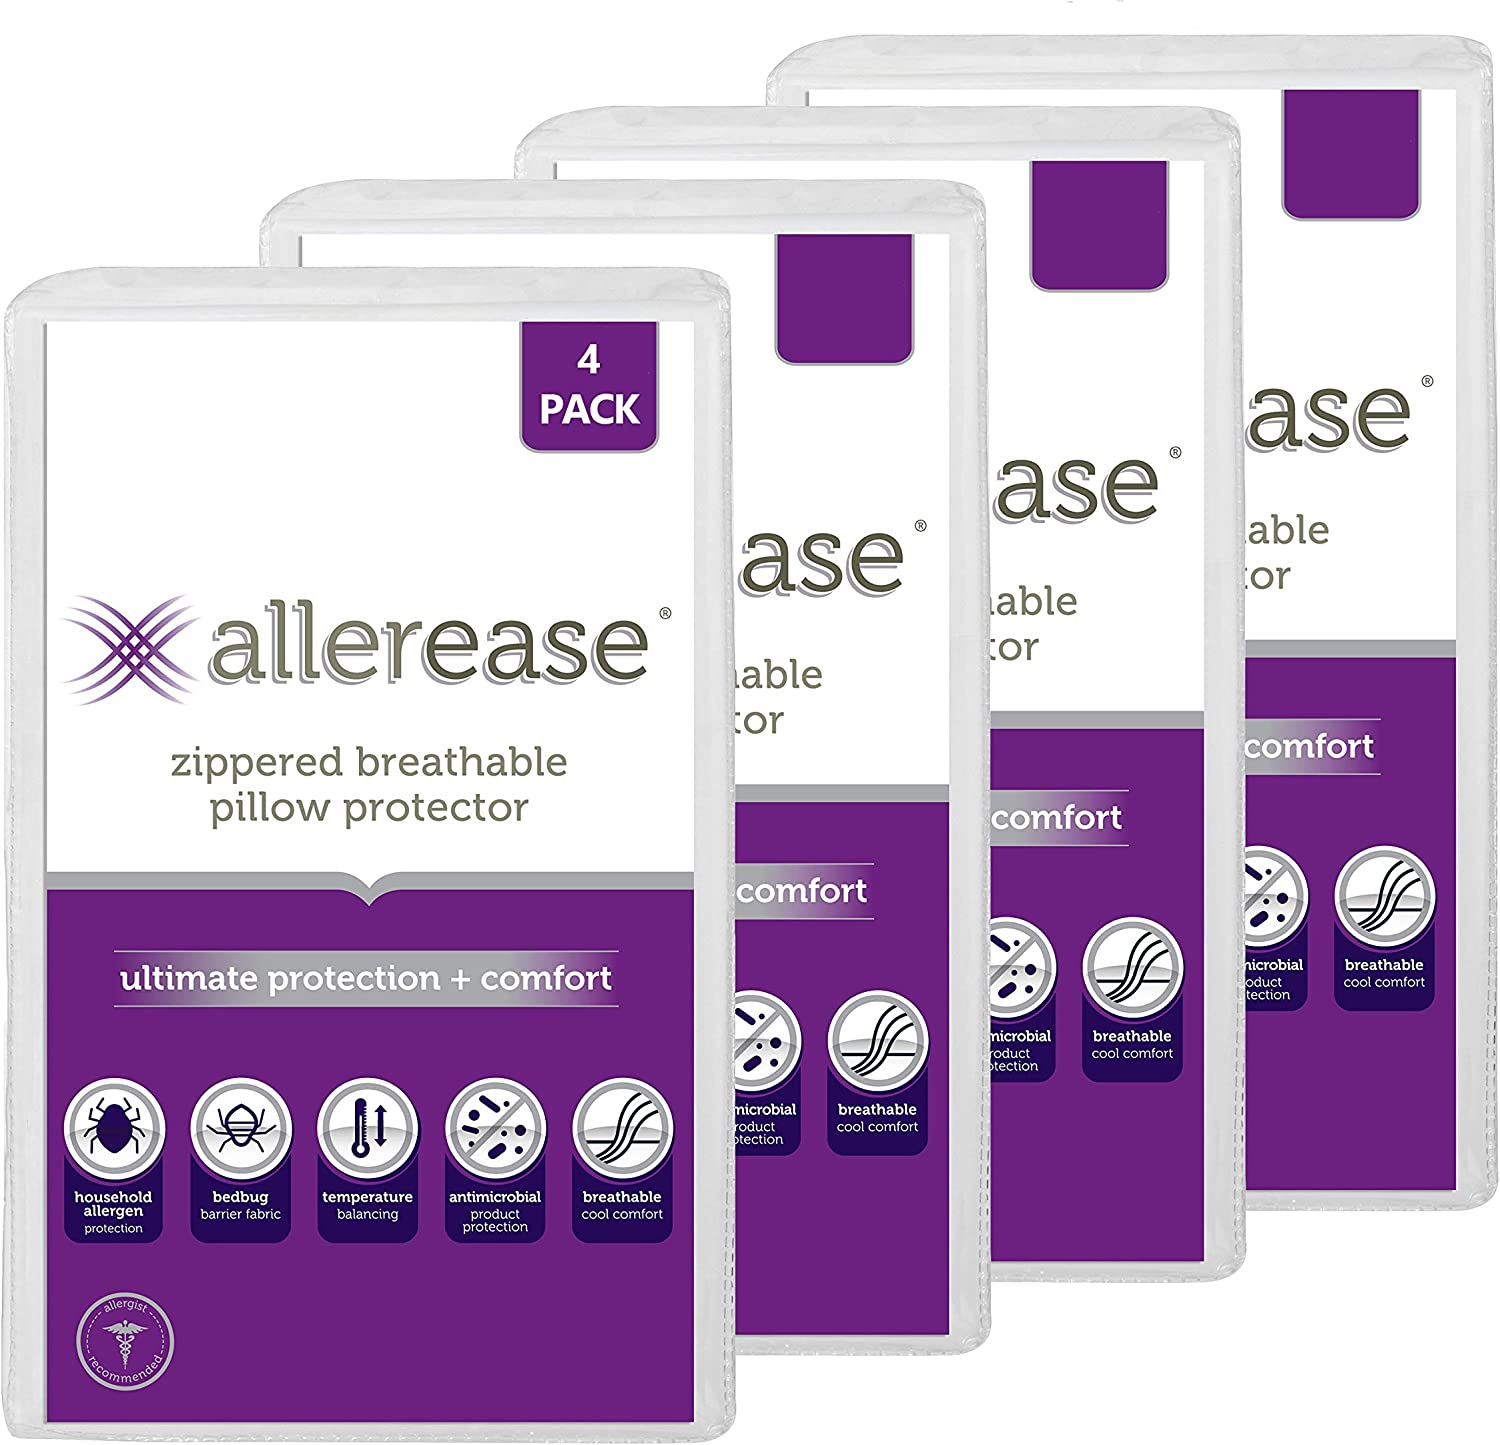 AllerEase Ultimate Protection & Comfort Temperature Balancing Pillow Protector – Zippered, Antimicrobial, Allergist Recommended Prevent Collection of Dust Mites and Allergens, King-4 Pack, White